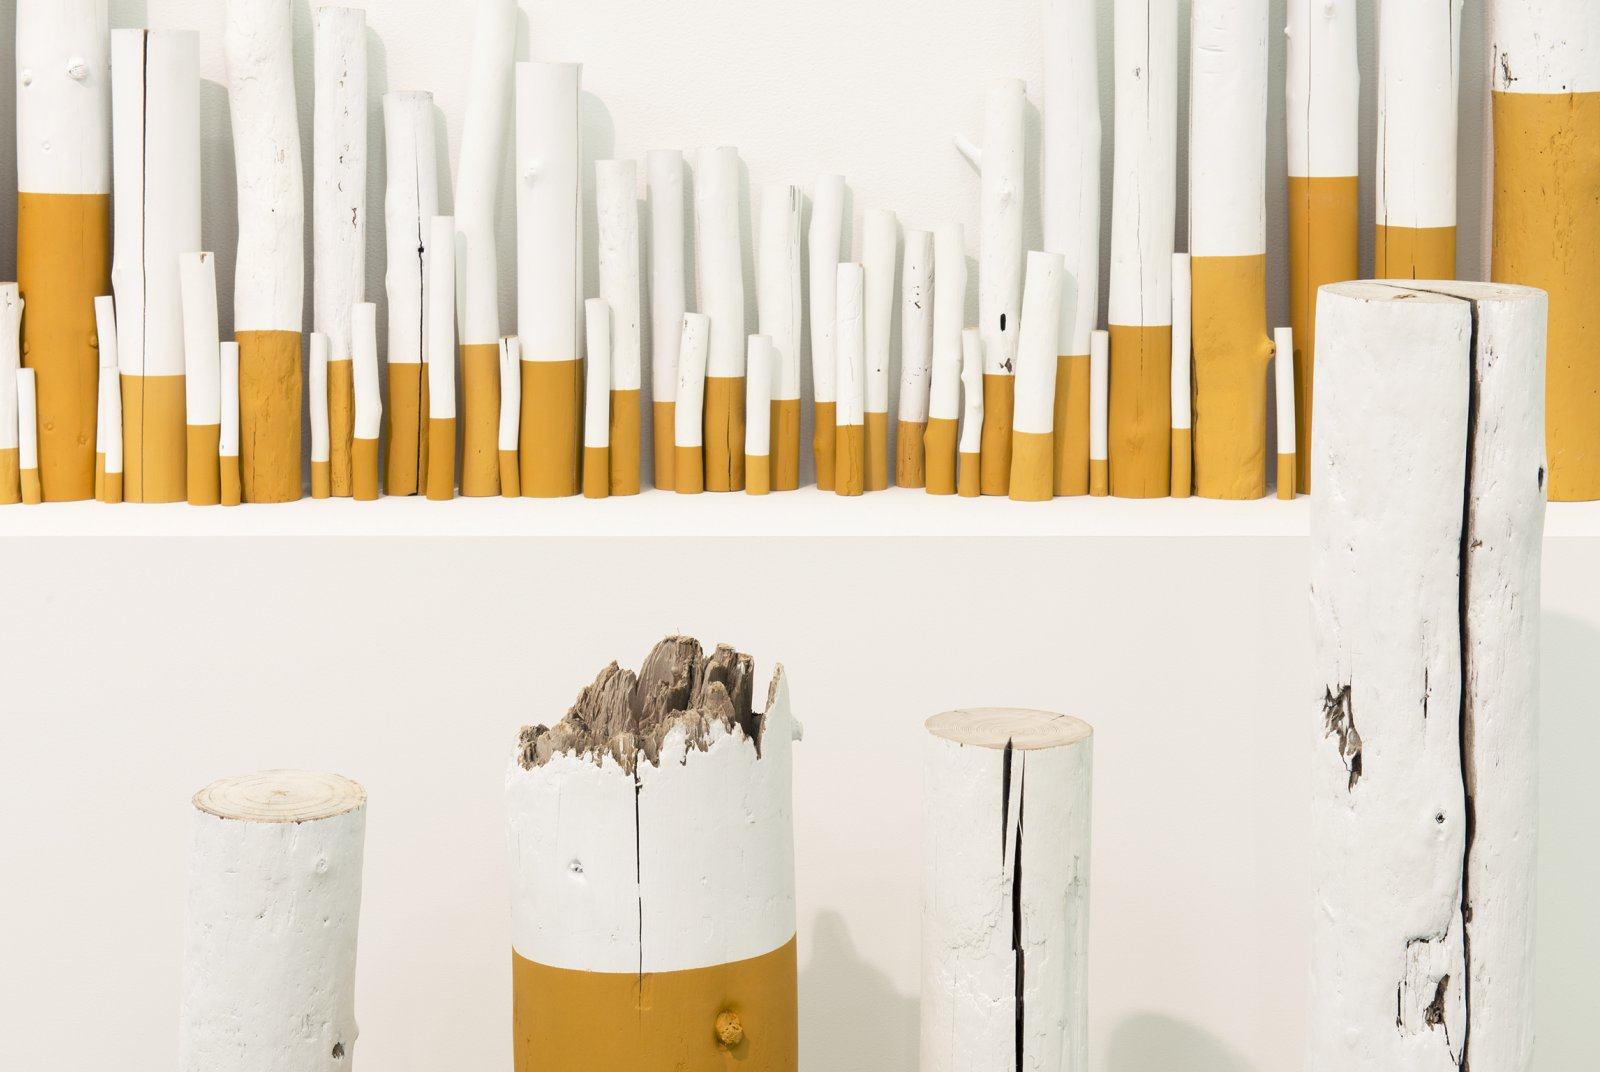 Liz Magor, The Rules (detail), 2012, wood, paint, 38 x 180 x 10 in. (97 x 457 x 25 cm) by Liz Magor